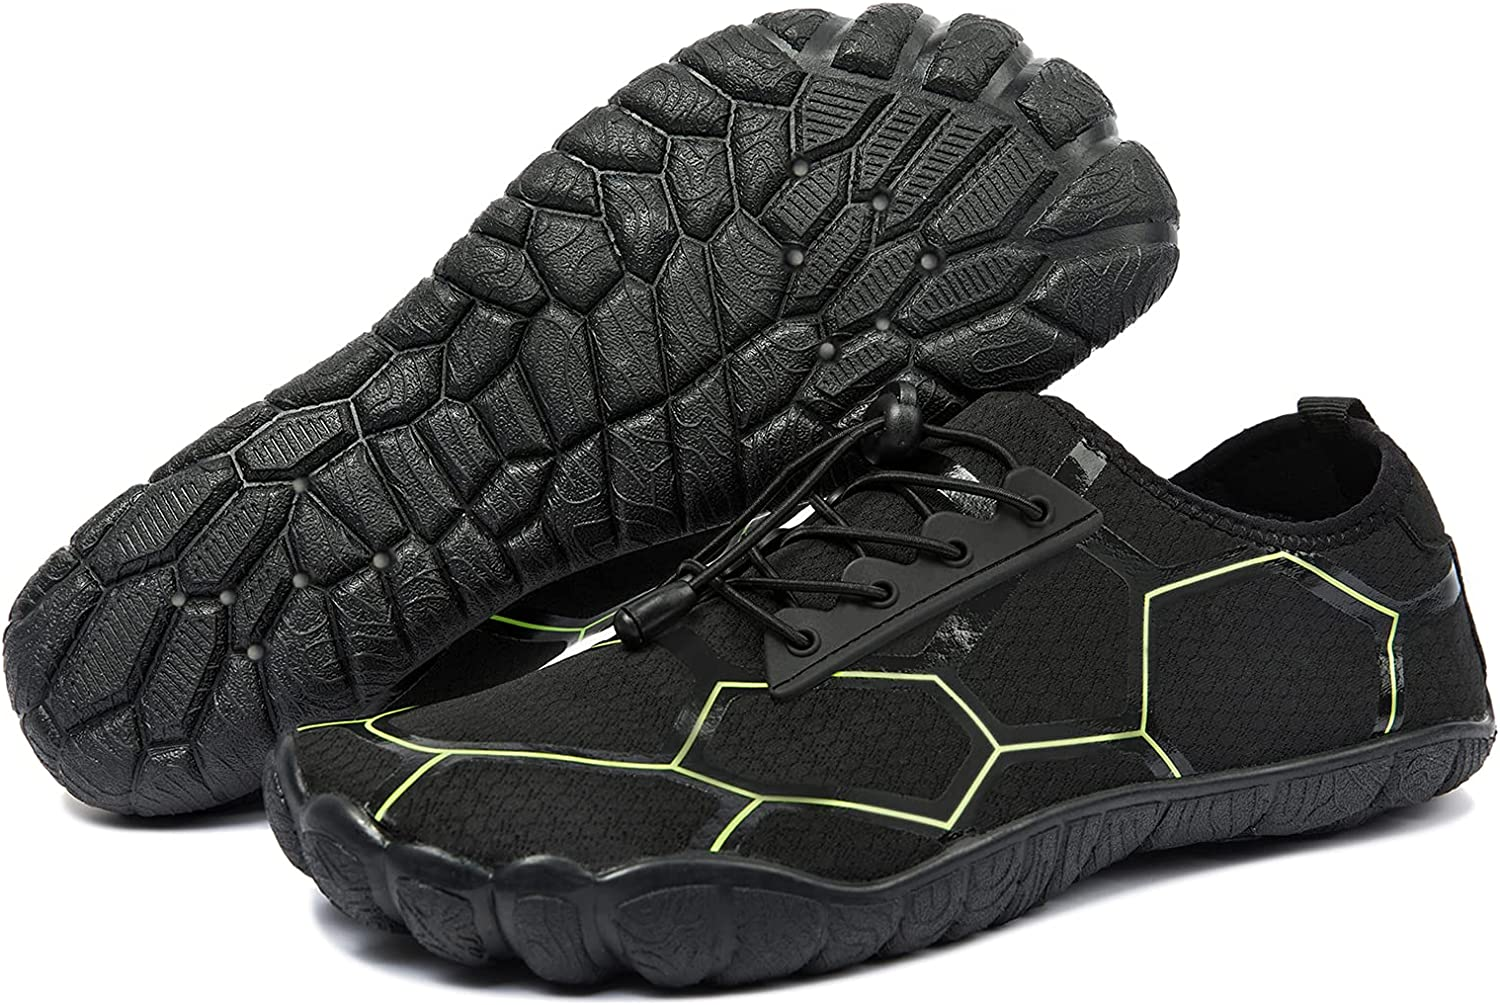 YESMOLA Men's Ranking TOP20 Water Shoes Quick-Dry Aqua Toe Sport Free shipping Wide Barefoot